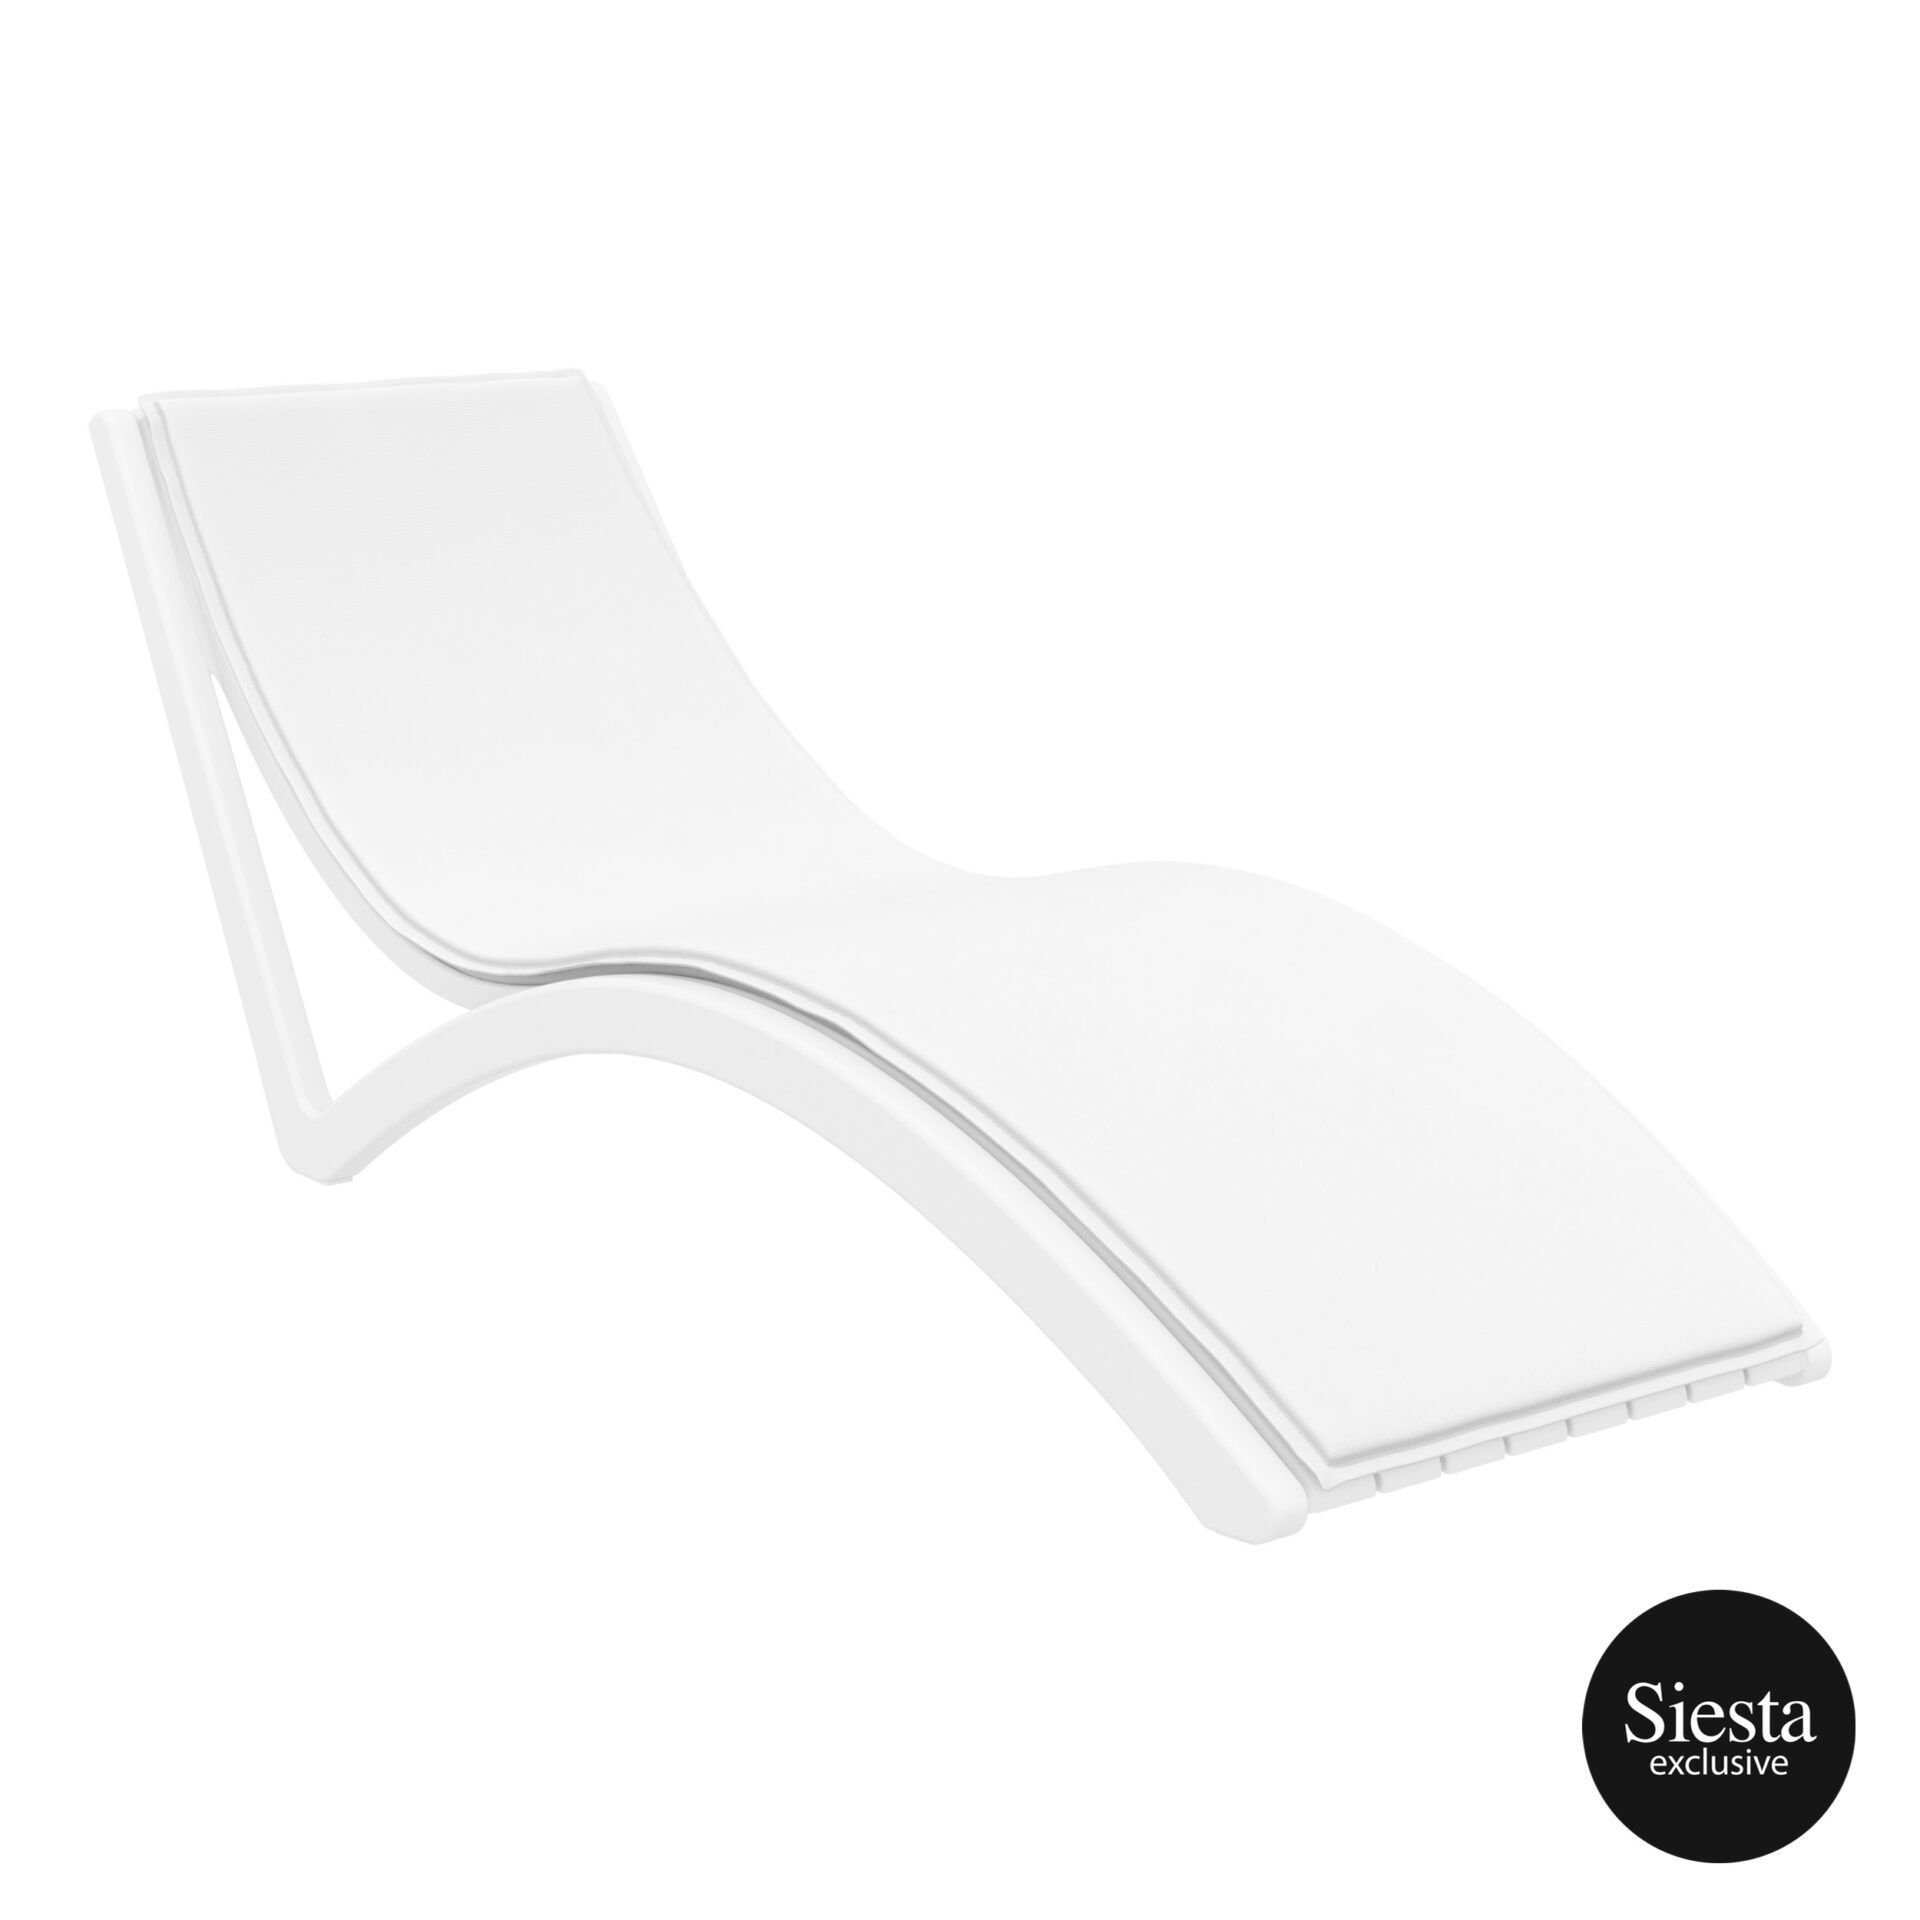 outdoor polypropylene slim sunlounger cushion white white front side